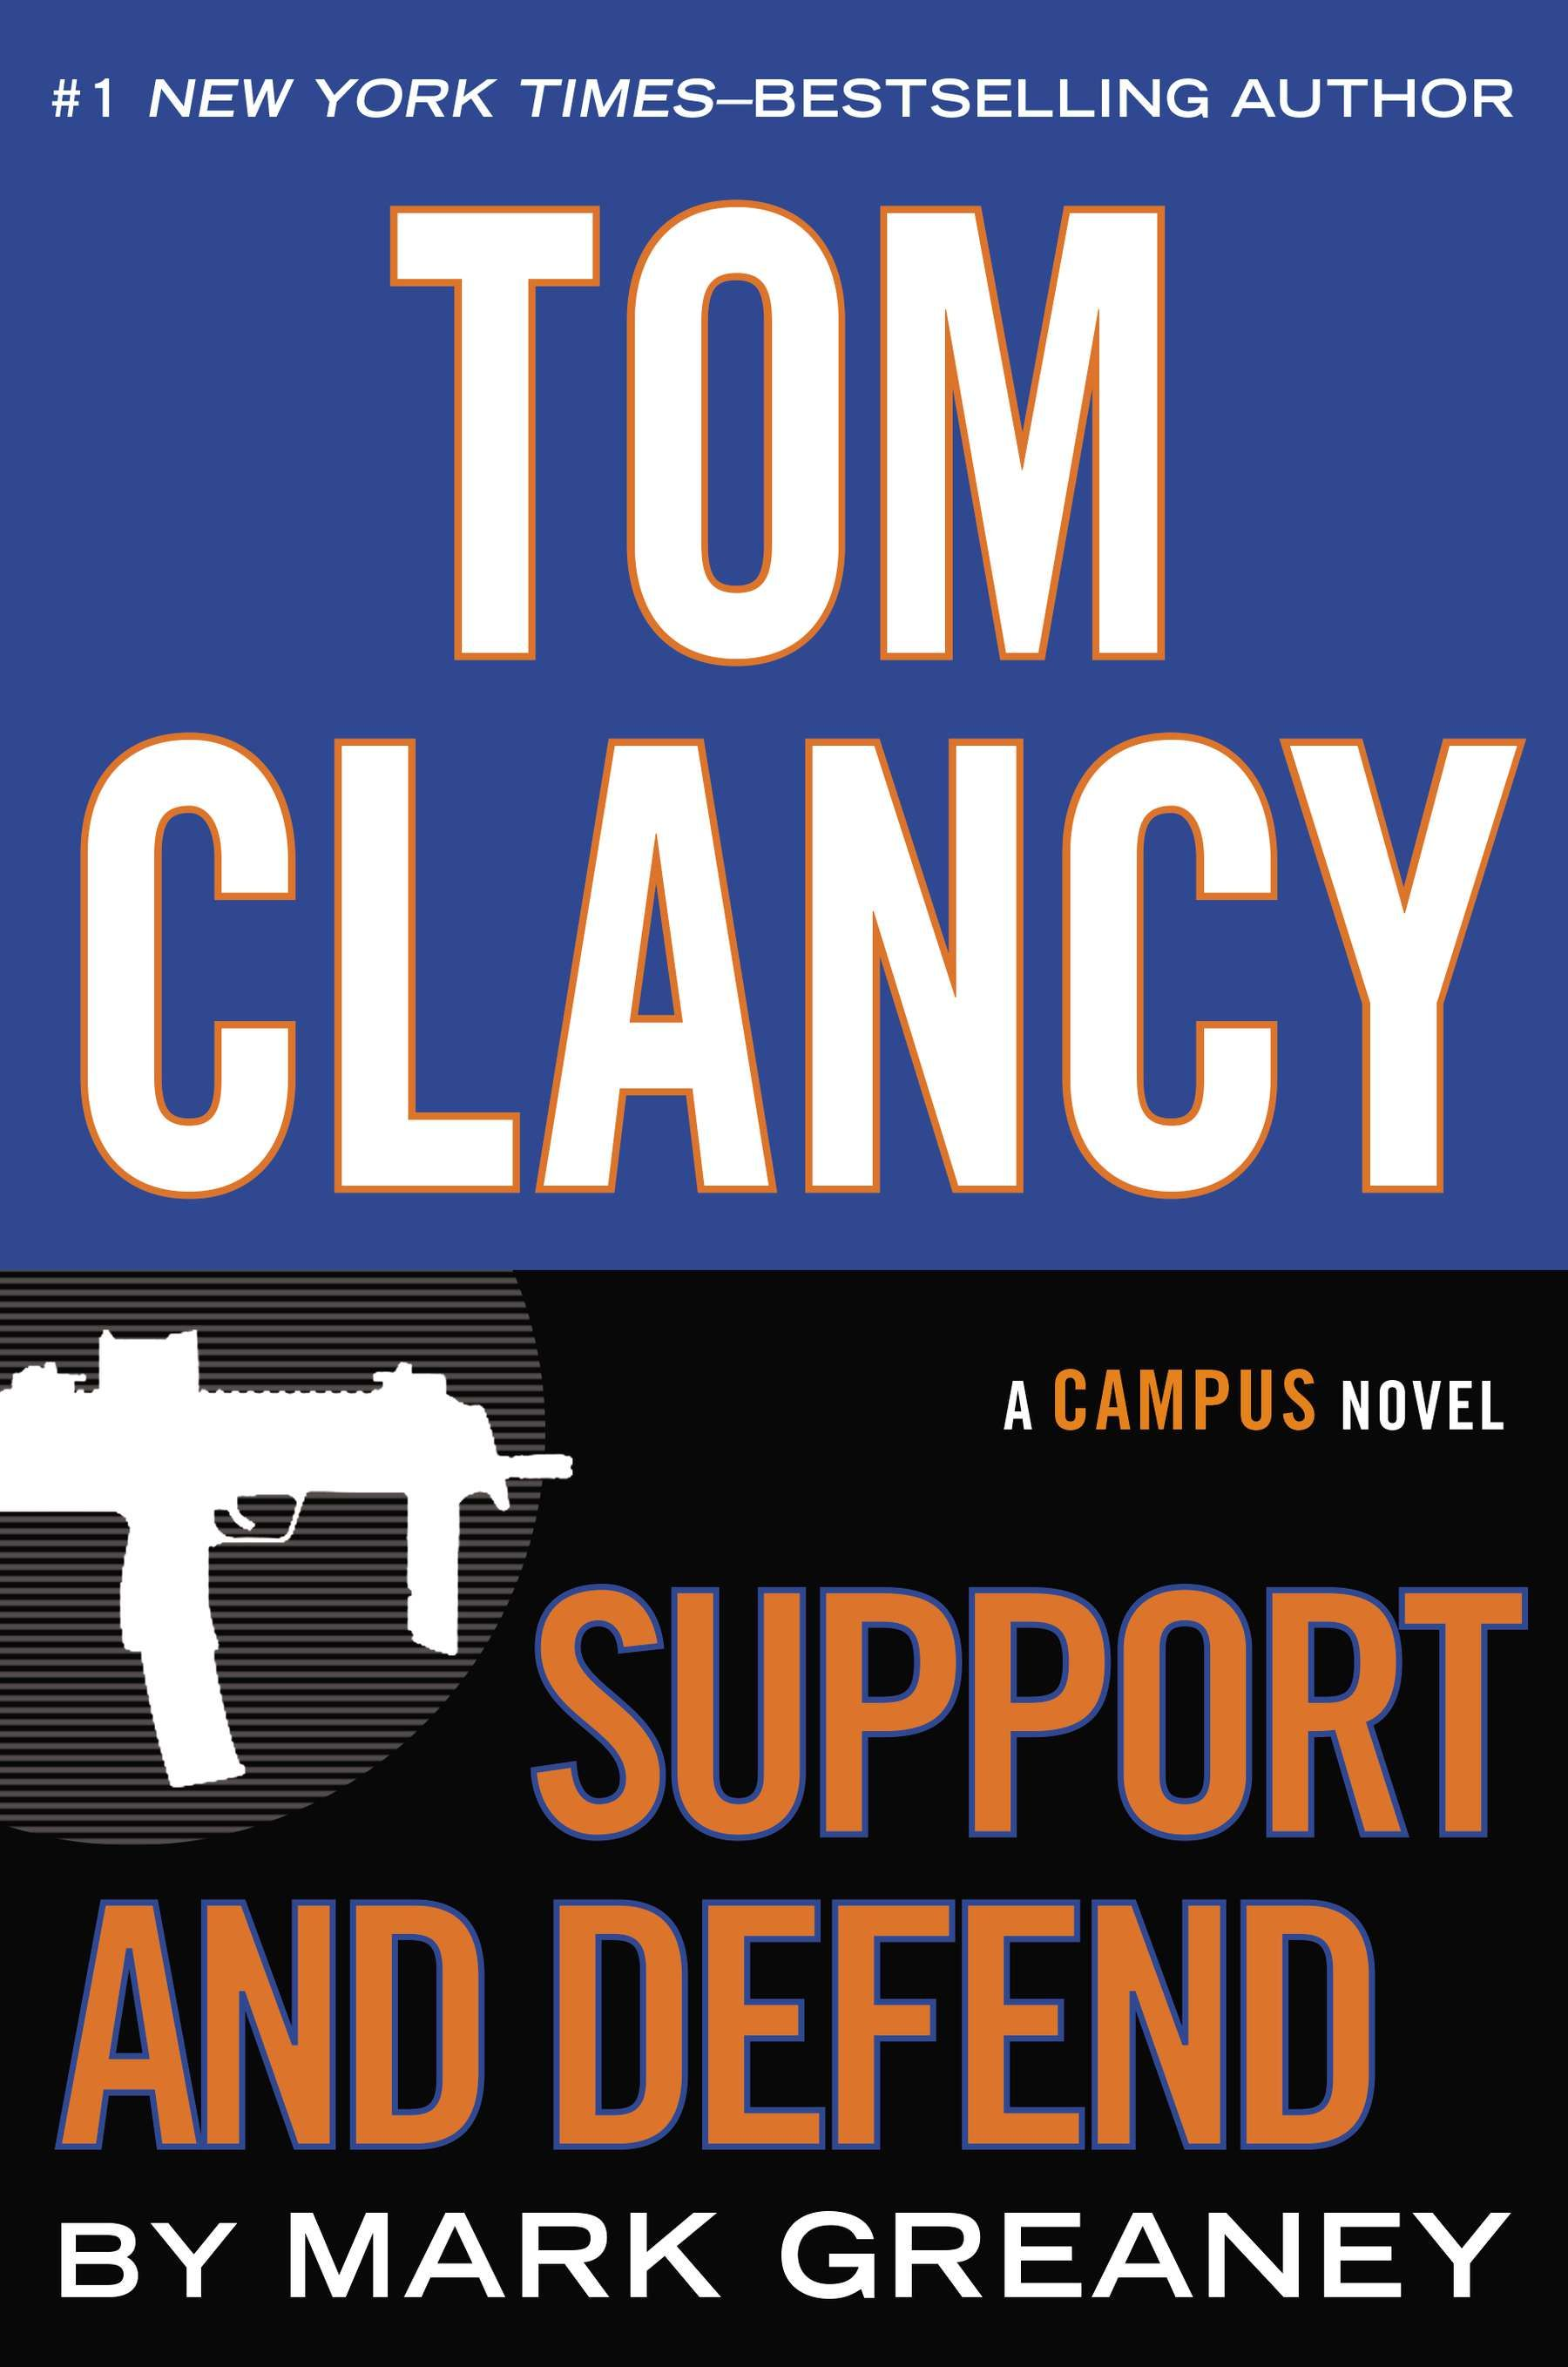 One of Tom Clancy's most storied characters, Dominic Caruso, is the only one who can stop America's secrets from falling into enemy hands in this blockbuster new novel written by Clancy's...